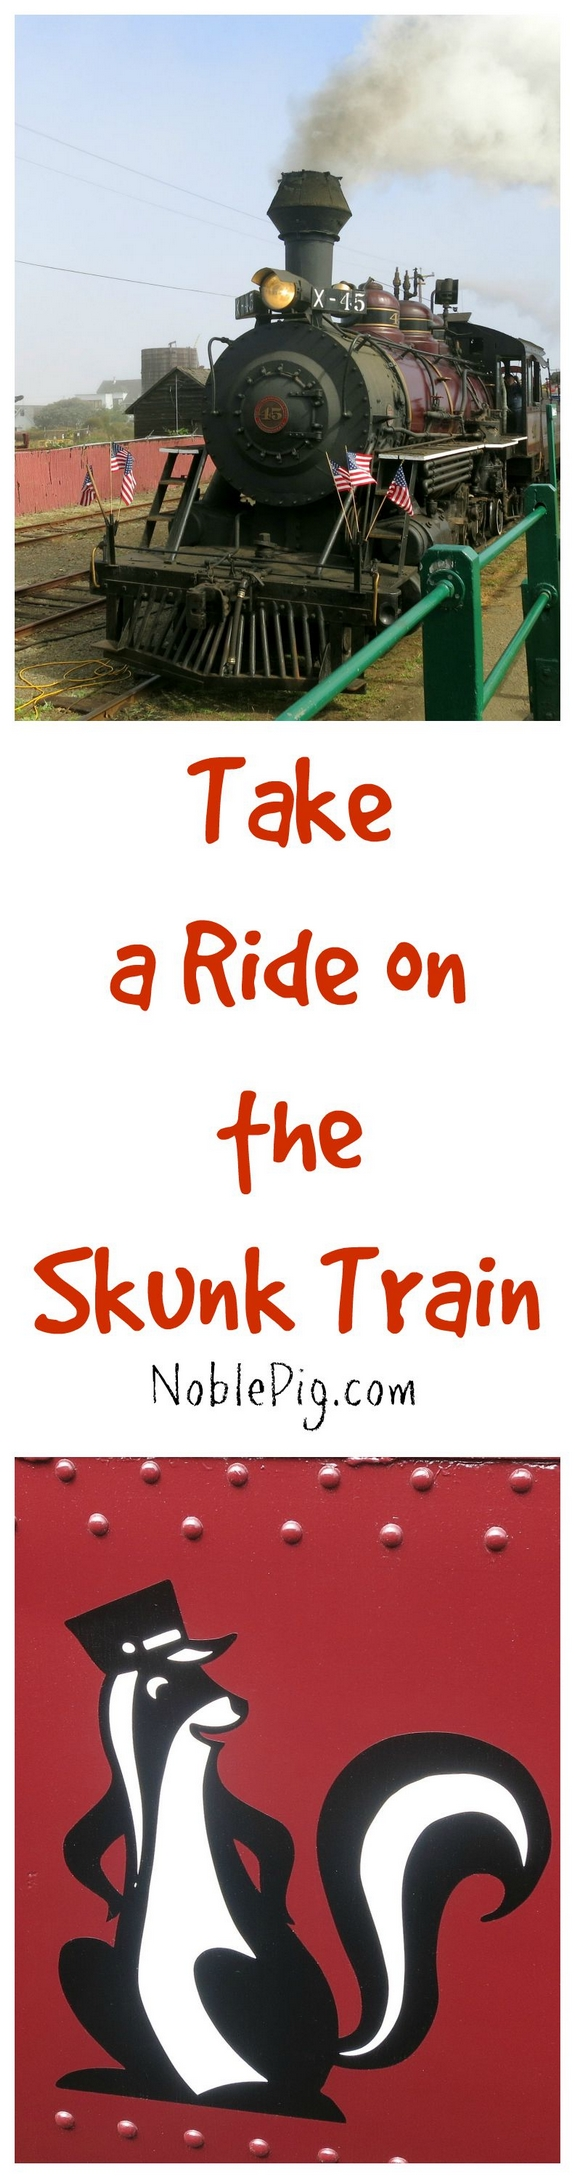 Take a ride on the Skunk Train in Mendocino California the kids and adults will enjoy this beautiful vintage train